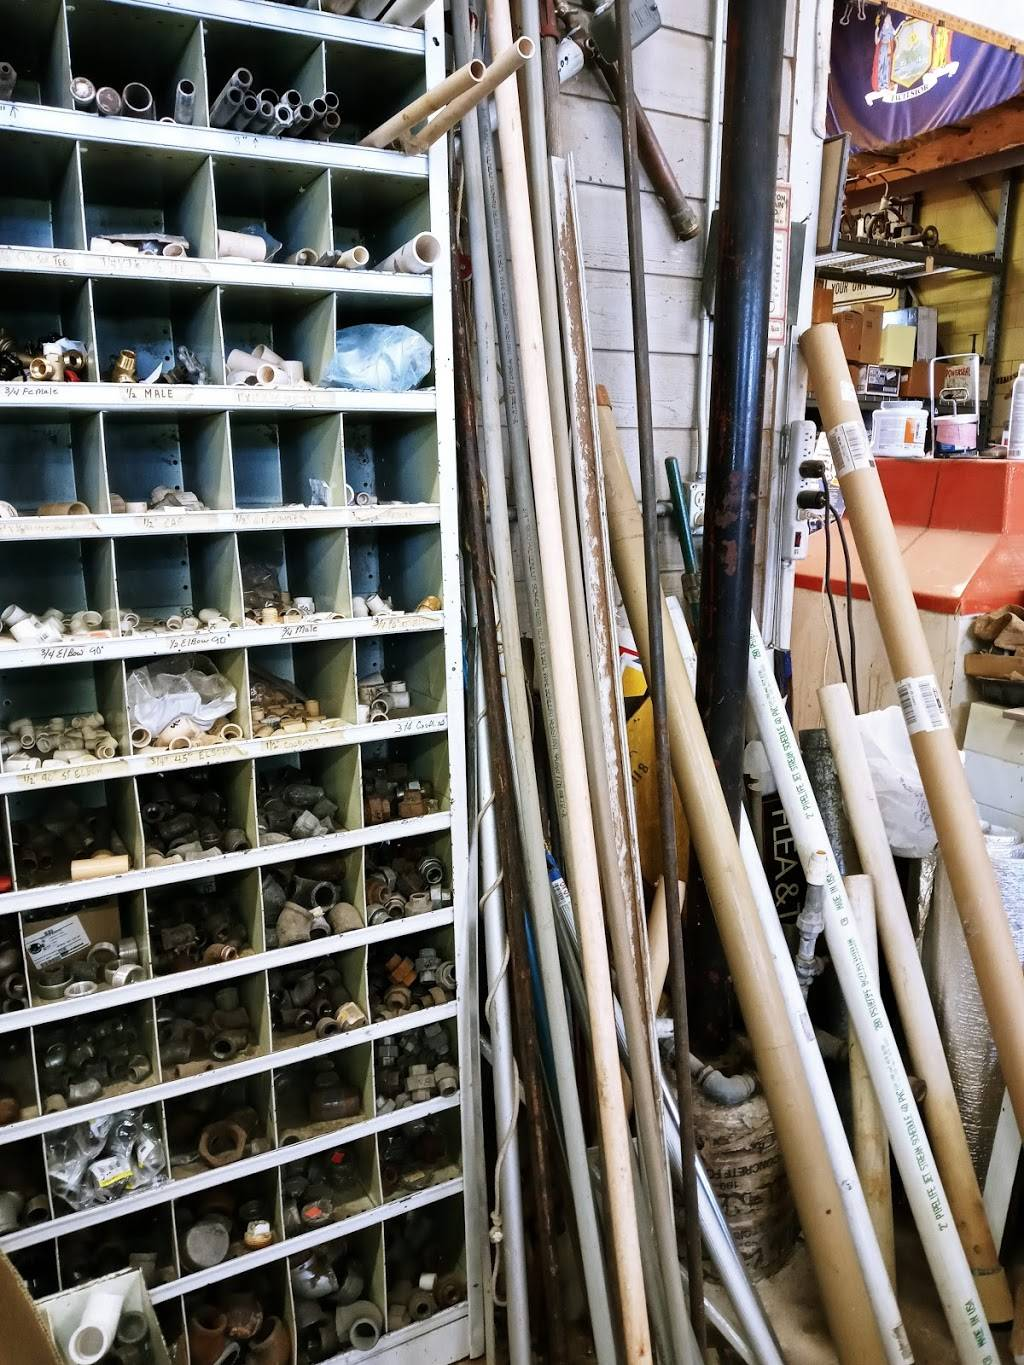 Big R Surplus & Salvage - hardware store  | Photo 1 of 6 | Address: 6923 E, State Rd 114, Lubbock, TX 79407, USA | Phone: (806) 885-4070